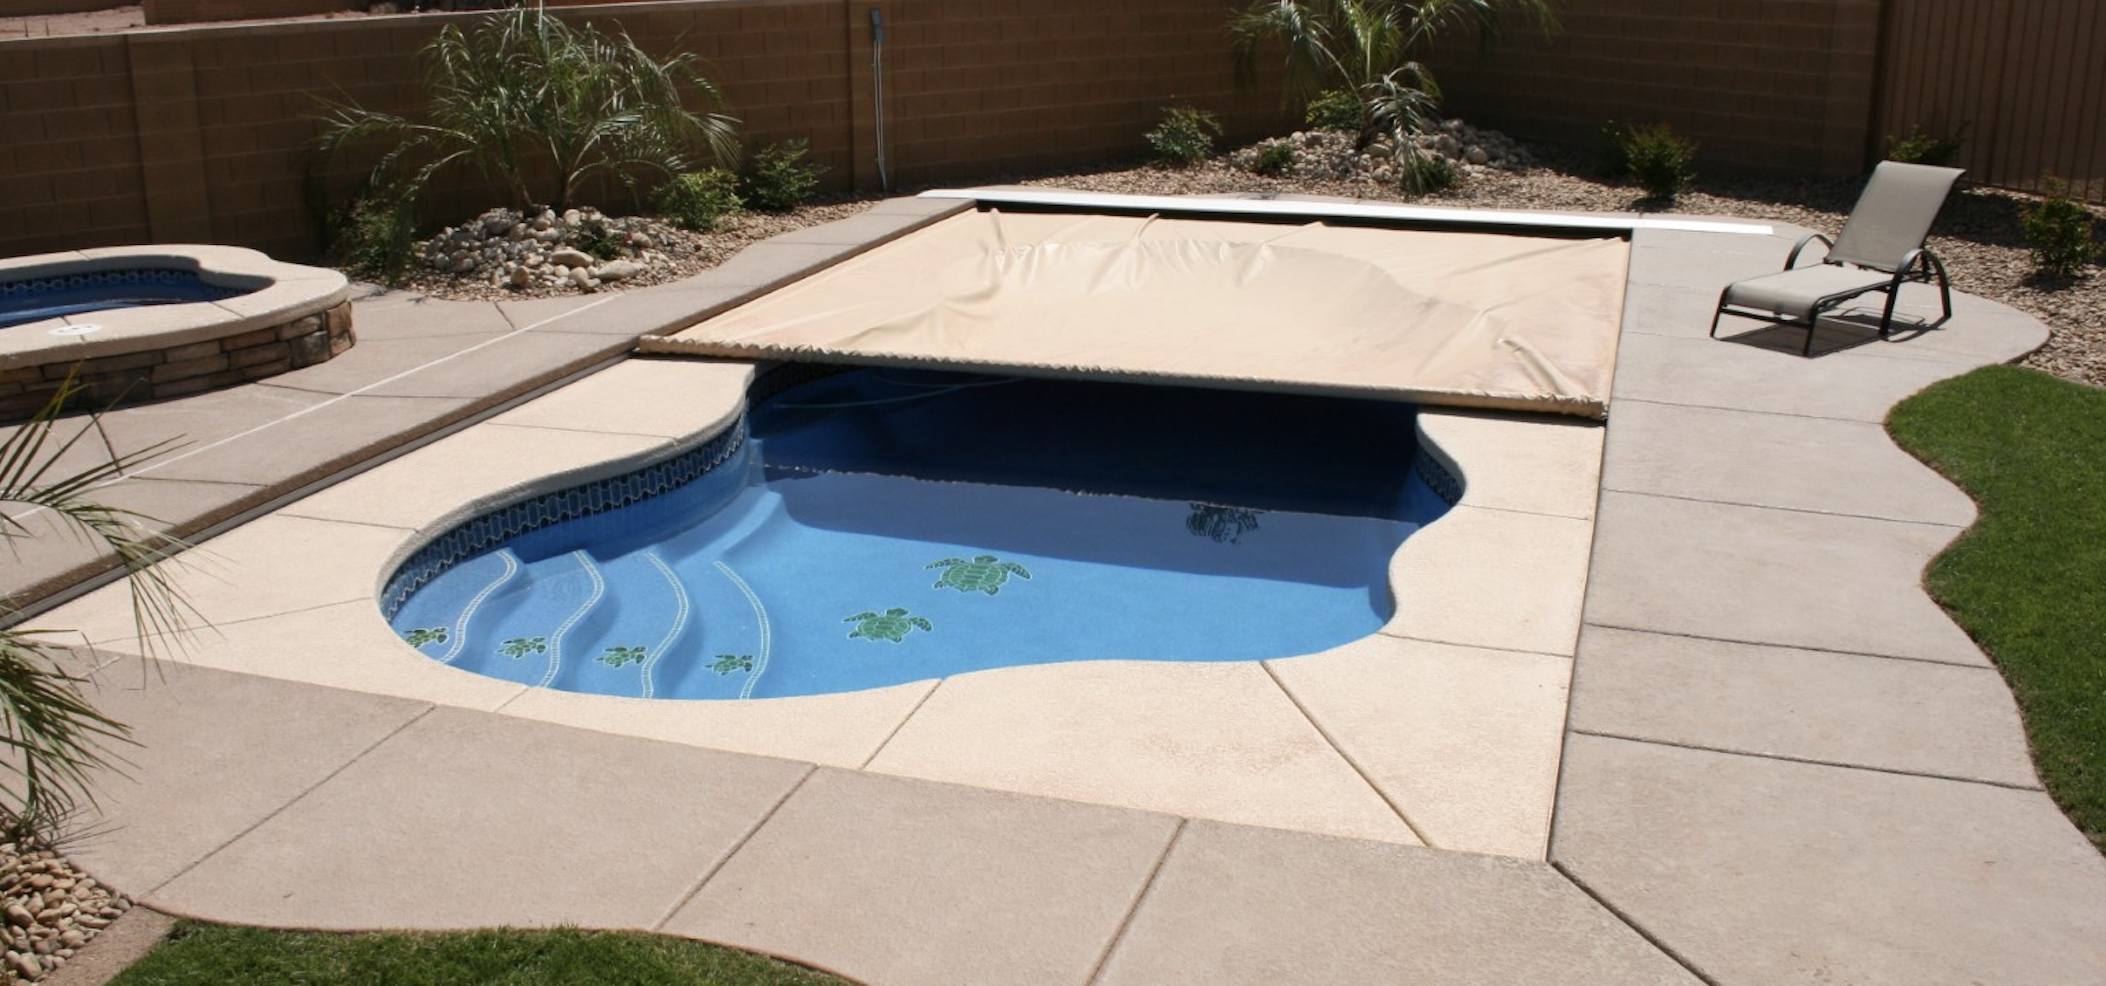 latham pool cover, automatic pool cover, pool safety cover